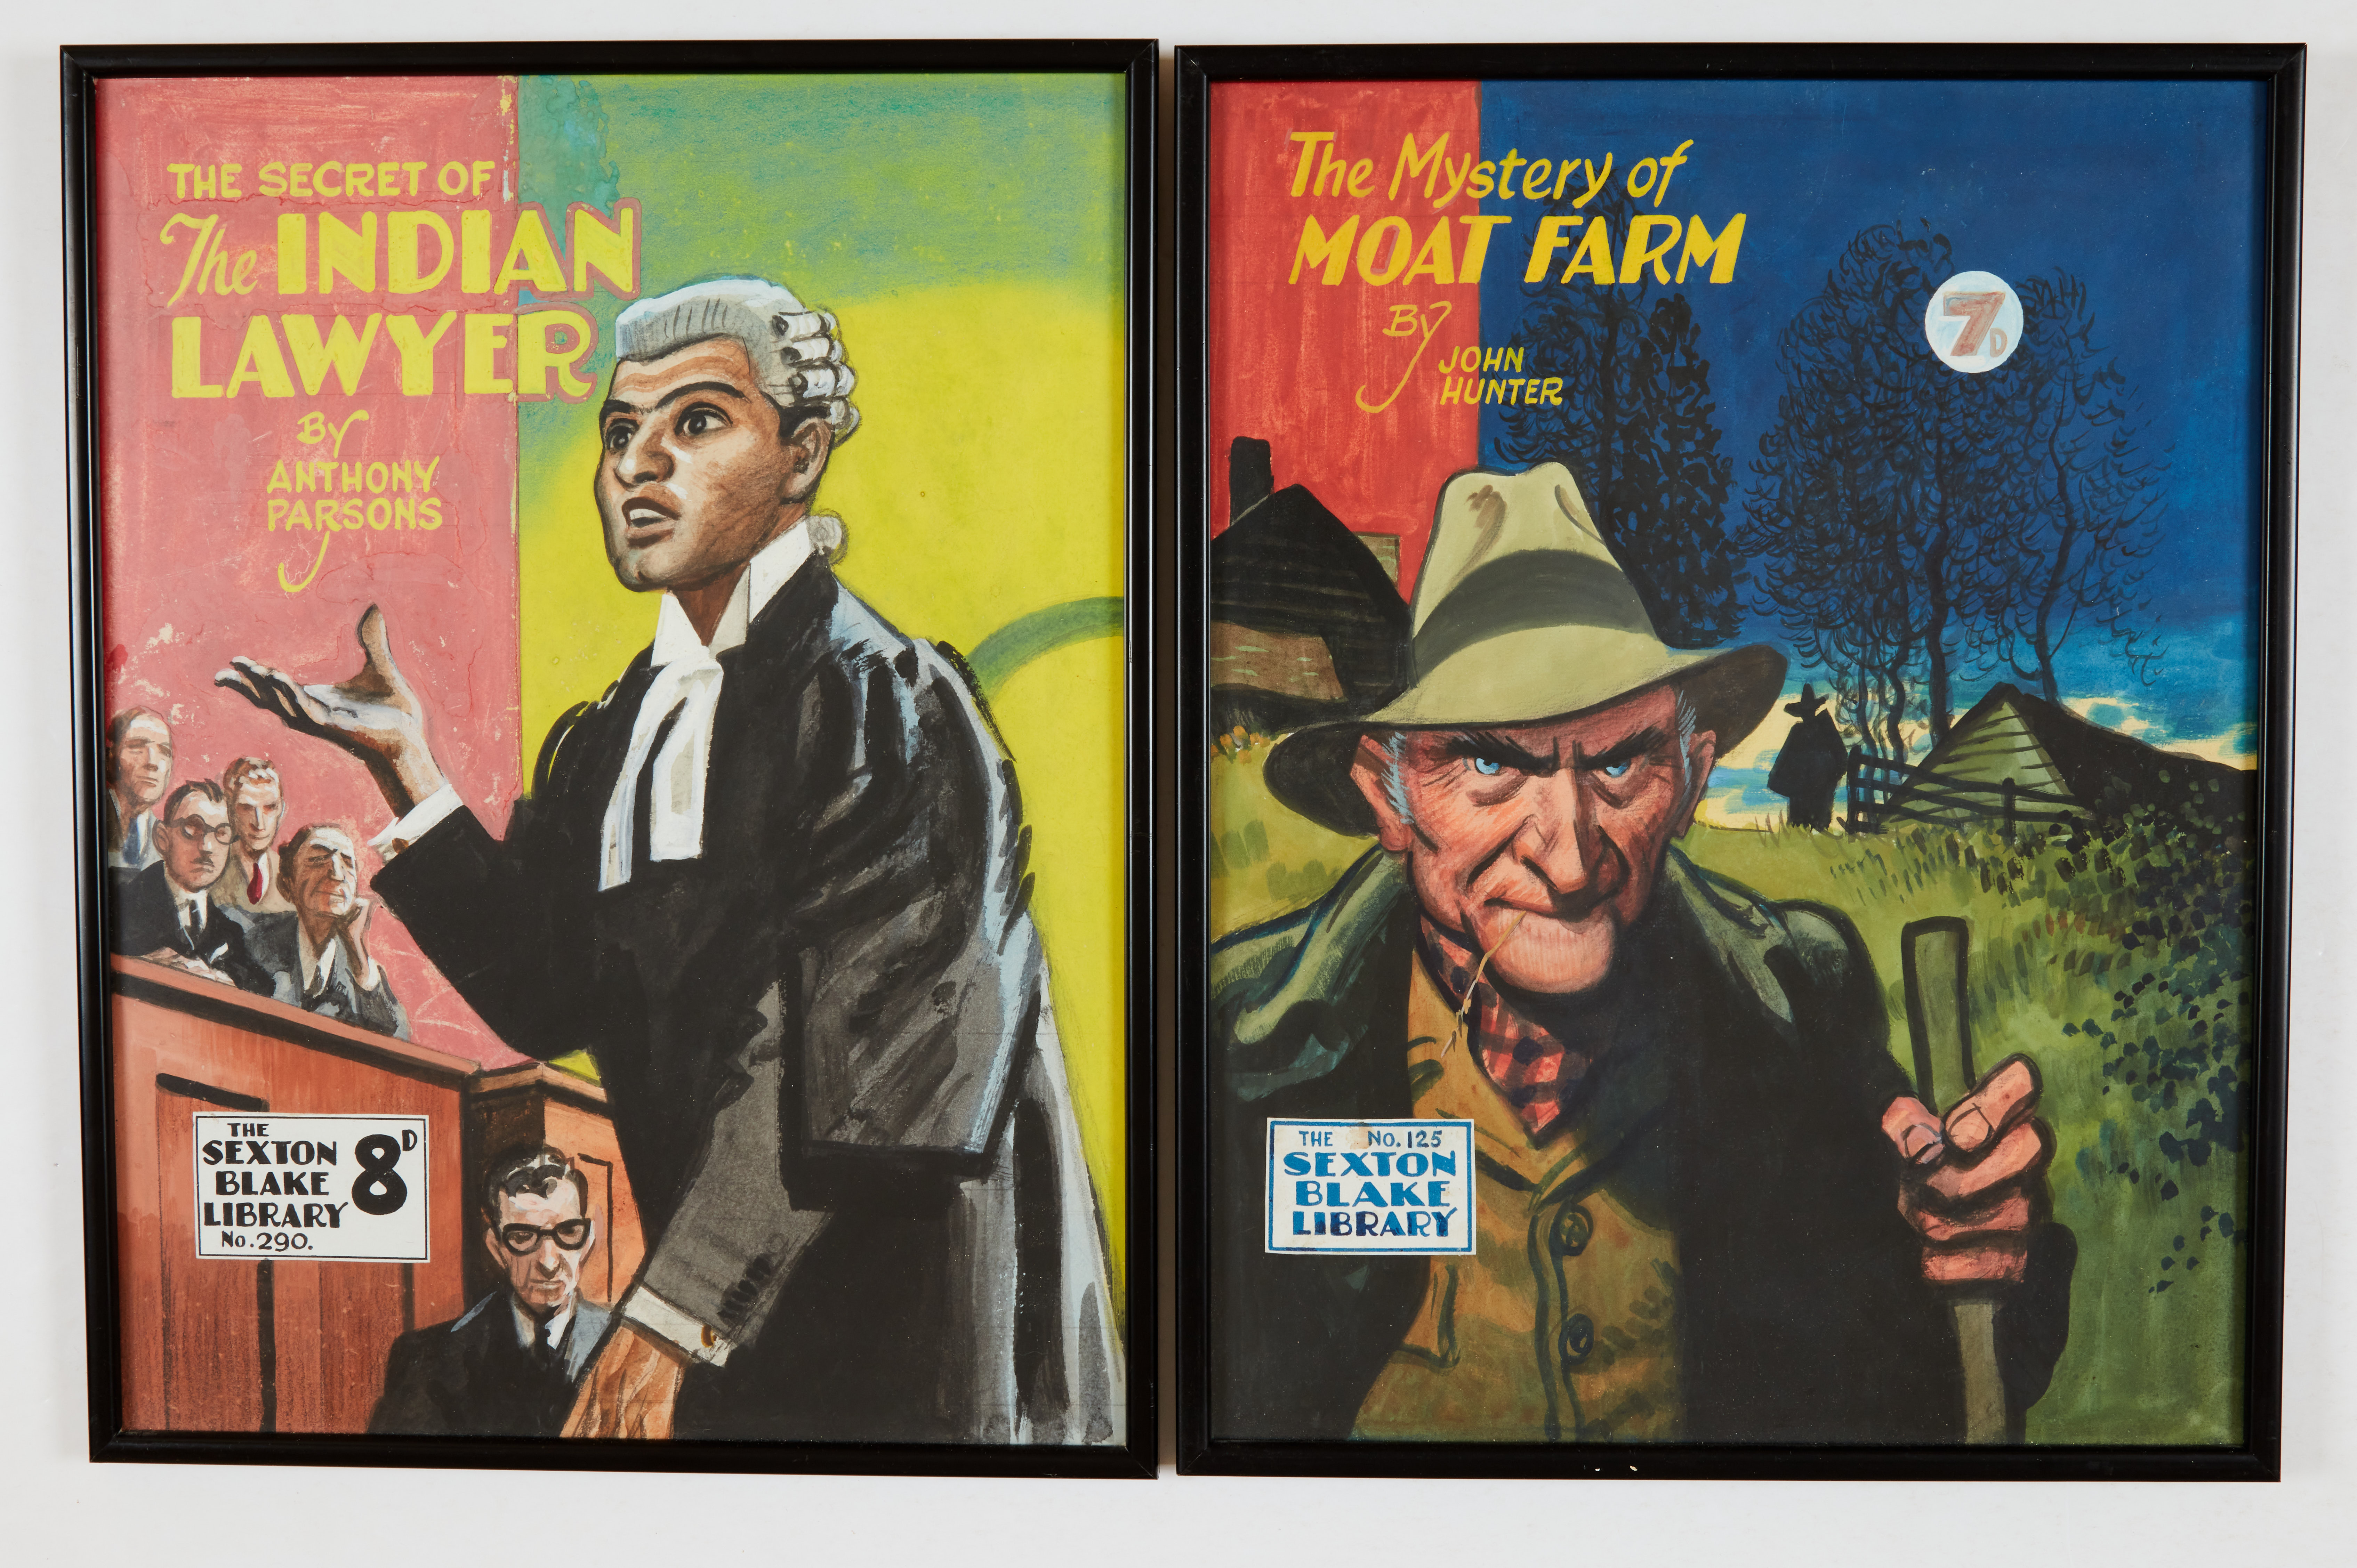 Sexton Blake/The Mystery of Moat Farm (1946) and the Secret of the Indian Lawyer (1953) two original